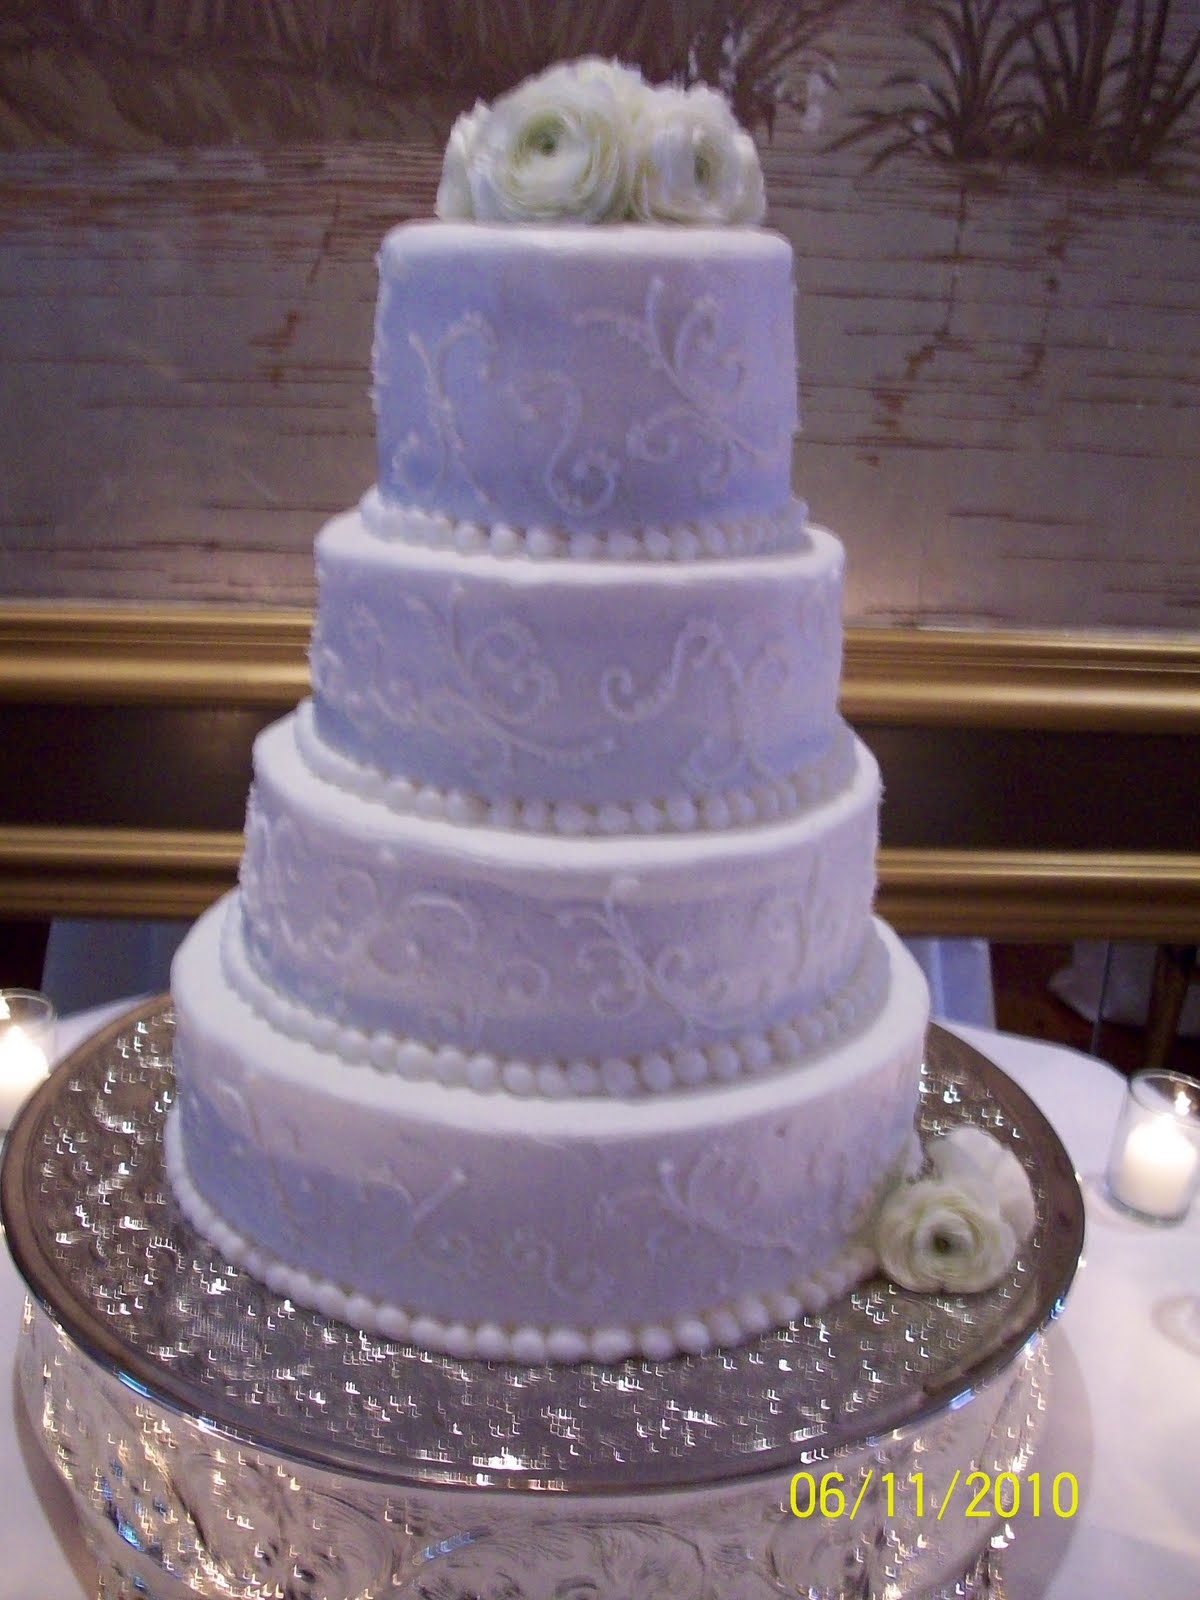 Cakes Candies Cookies Oh My Marie And Brad Morrison Wedding Cake 6 11 10